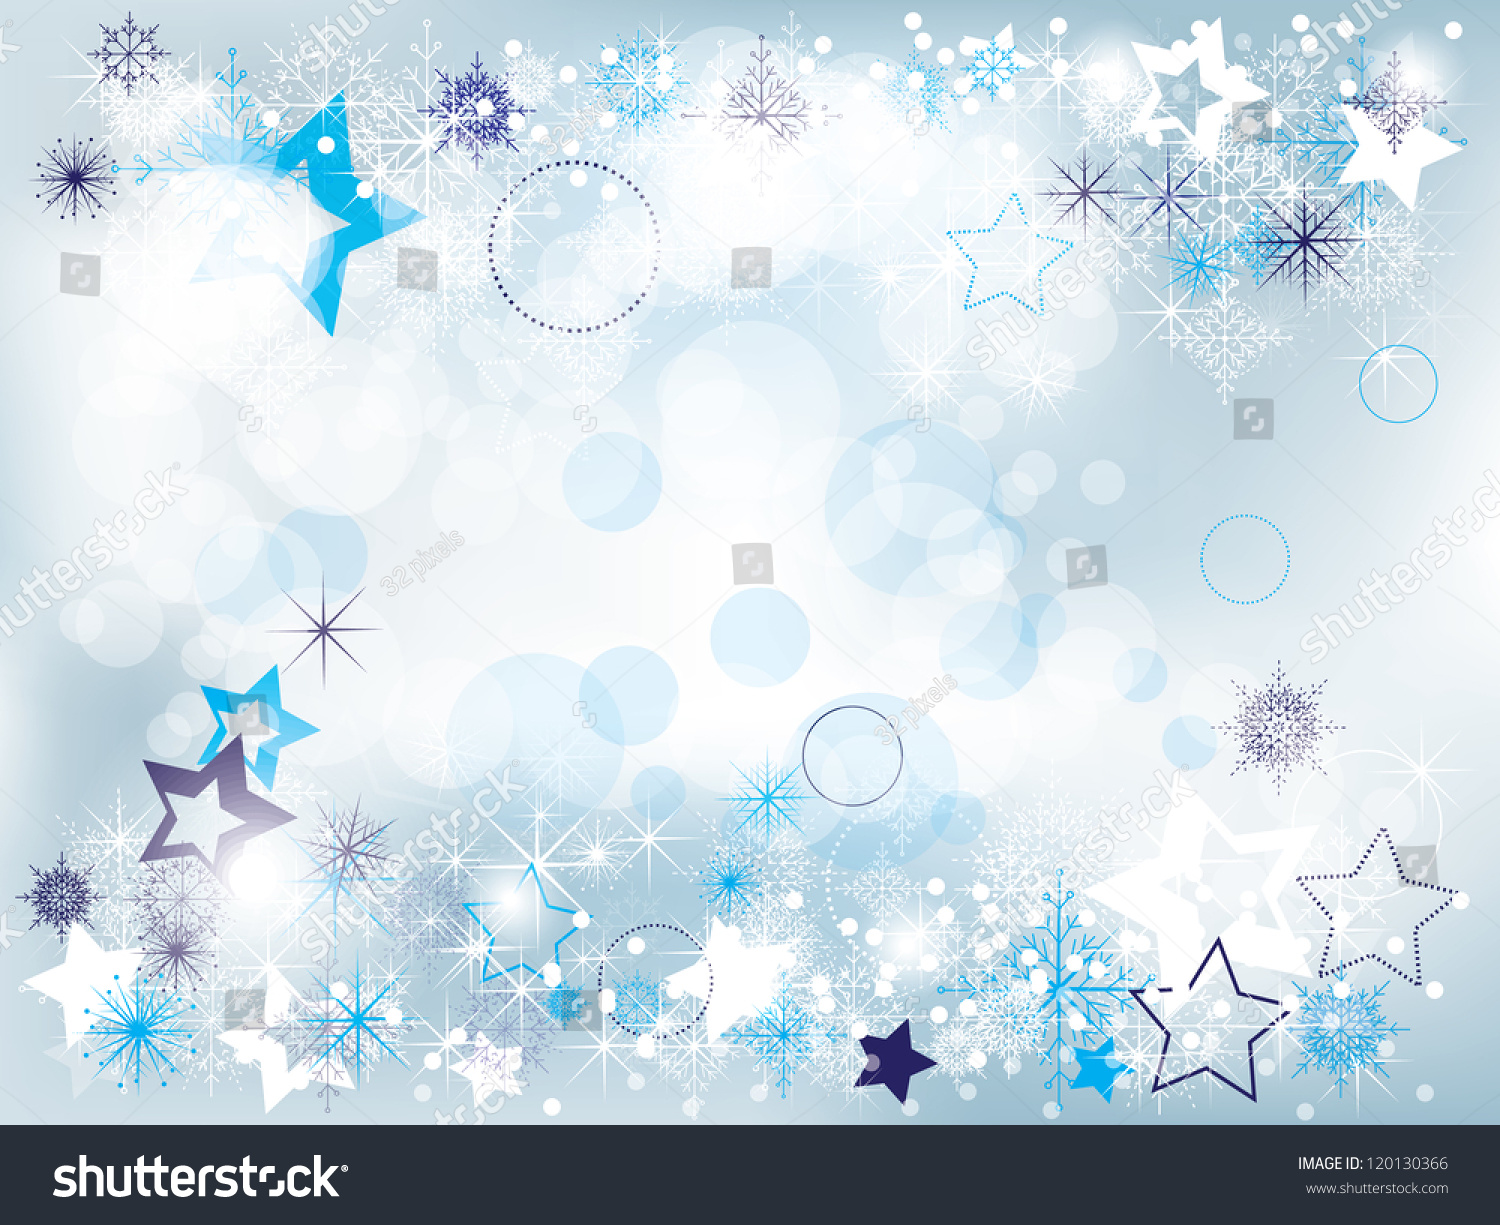 Elegant Christmas Background With Snowflakes Stock Vector